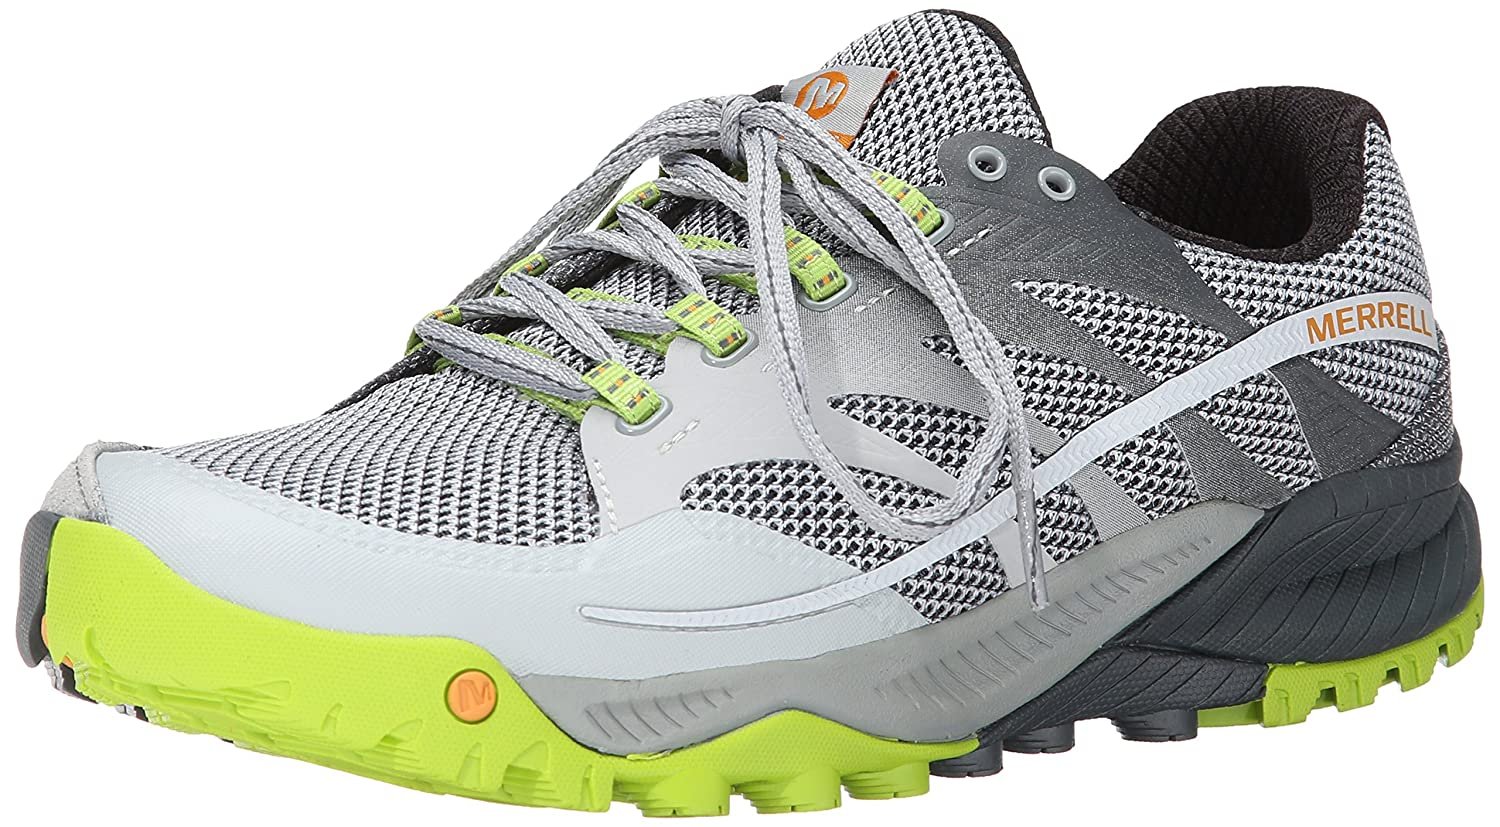 Merrell Men's All Out Charge Trail Running Shoe B00KZO8DLY 12 D(M) US|Grey / Lime Green